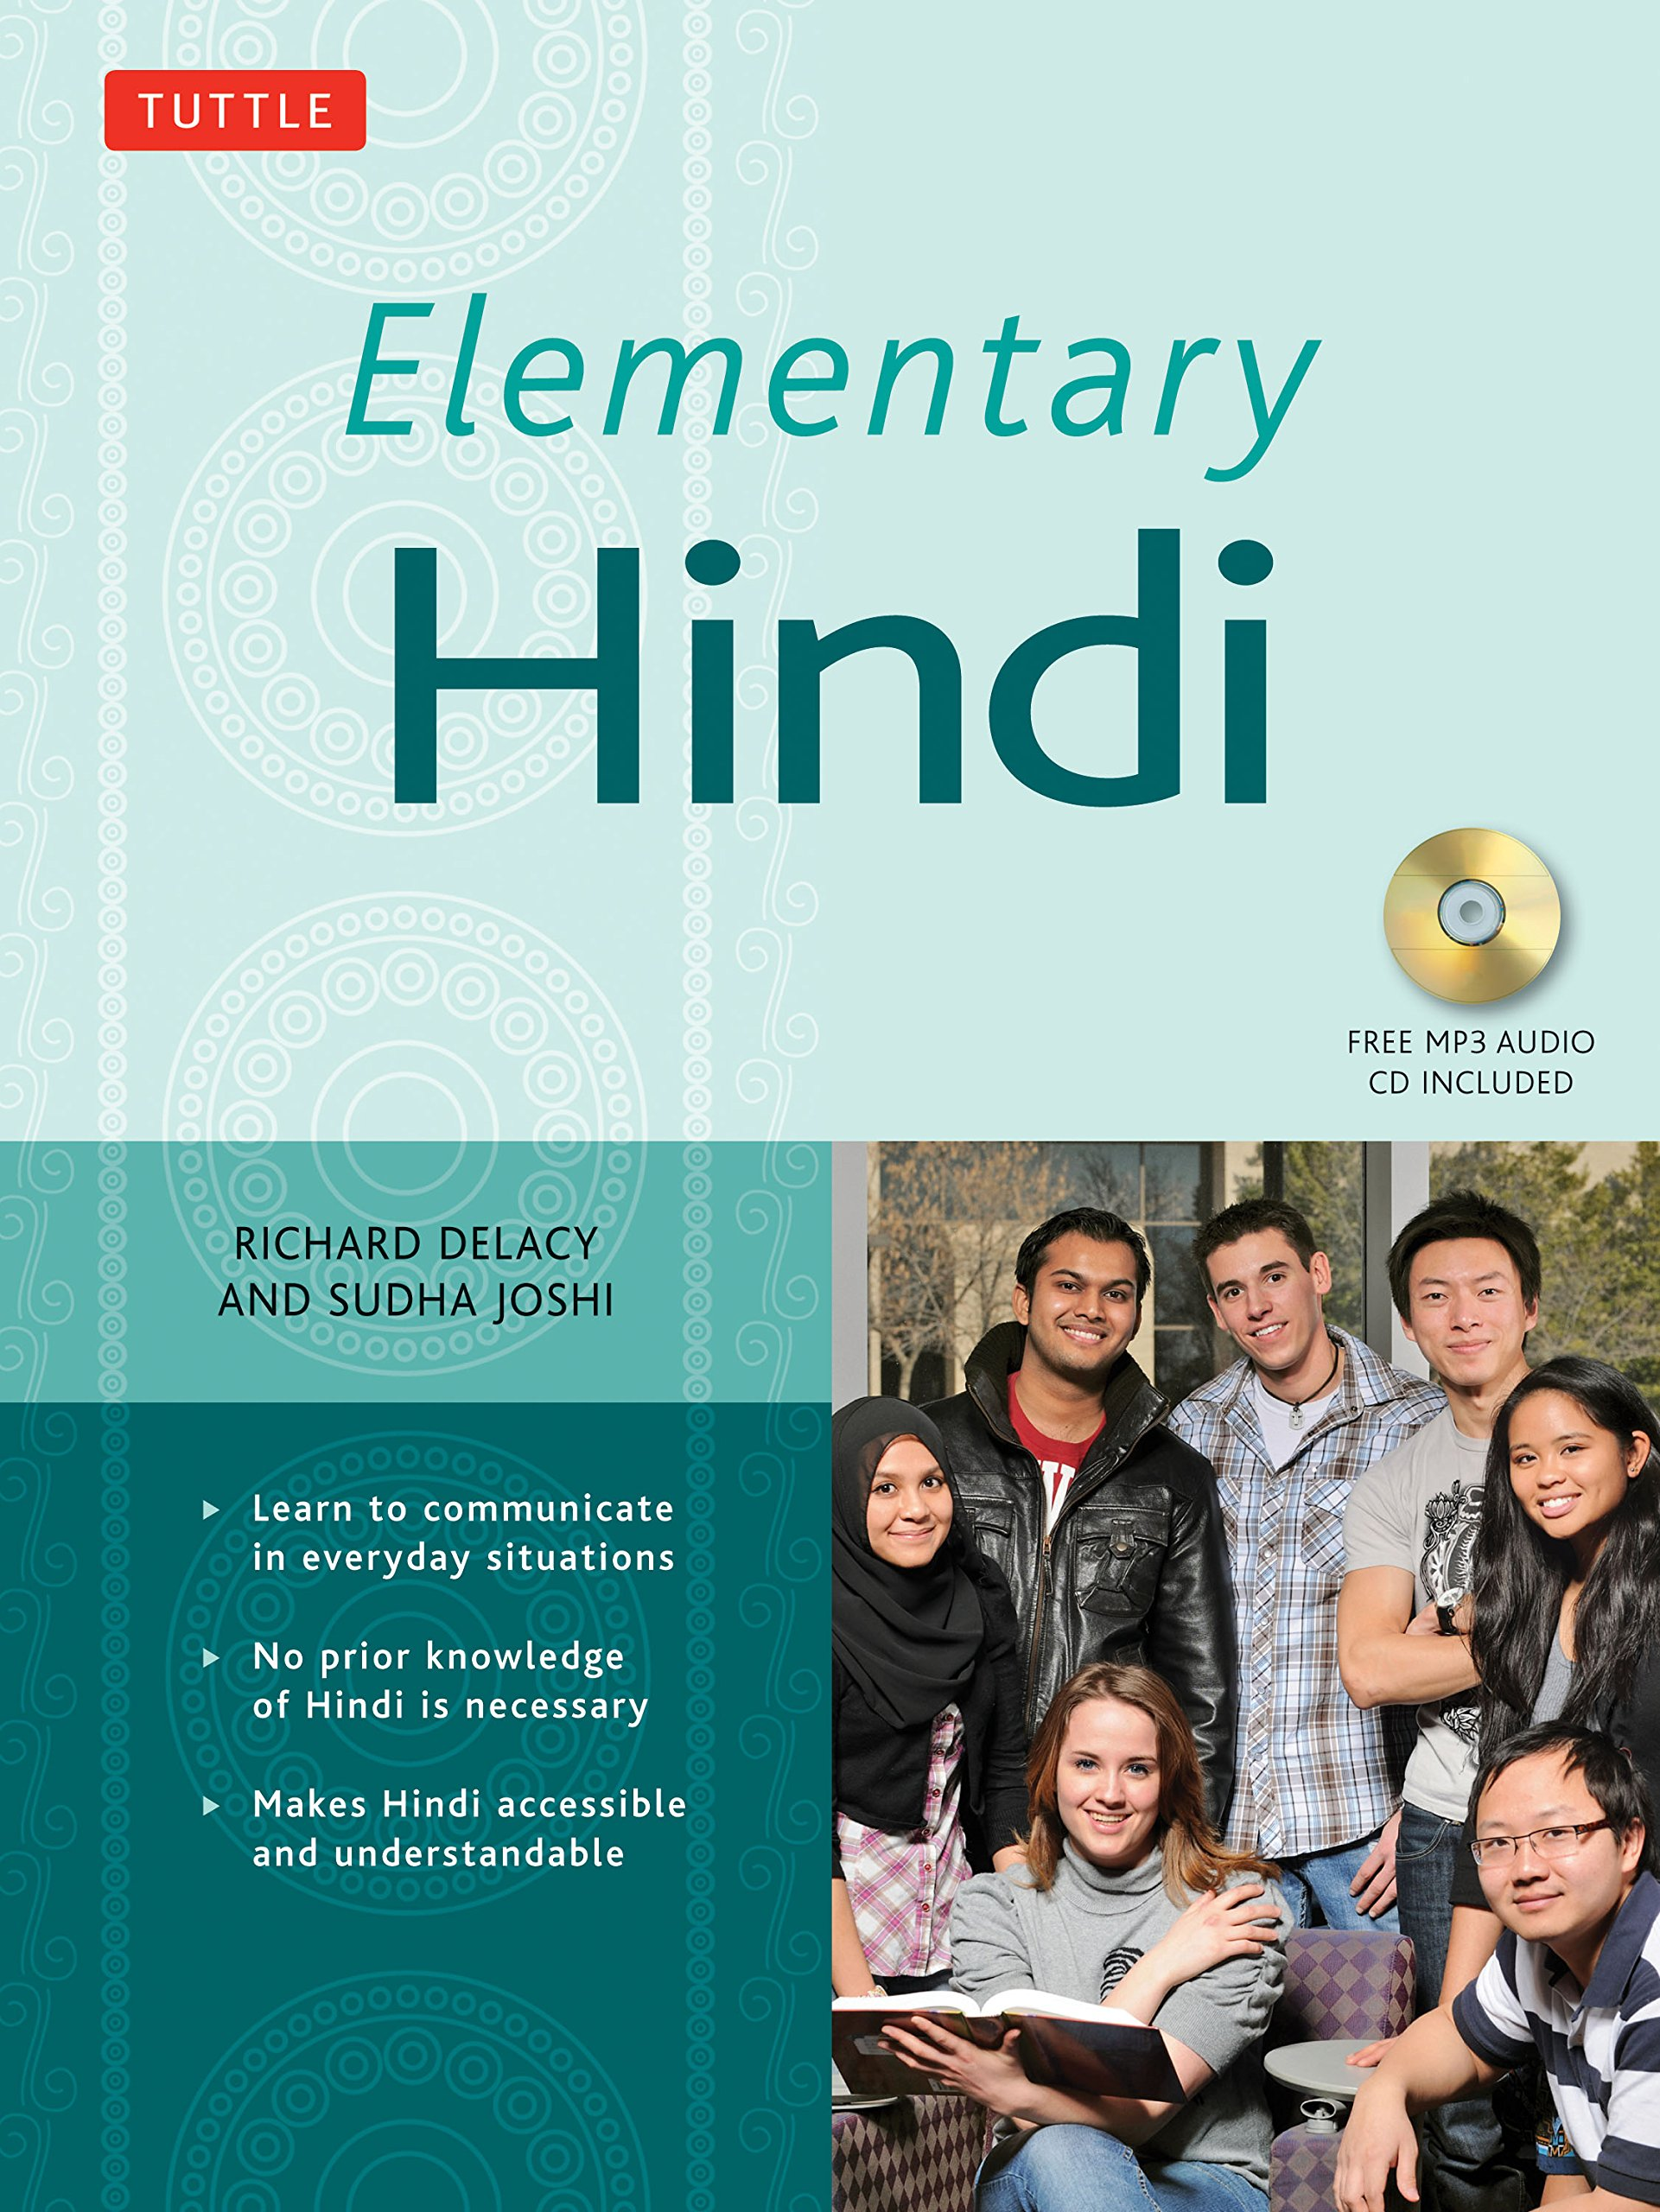 Elementary Hindi   Mp3 Audio CD Included